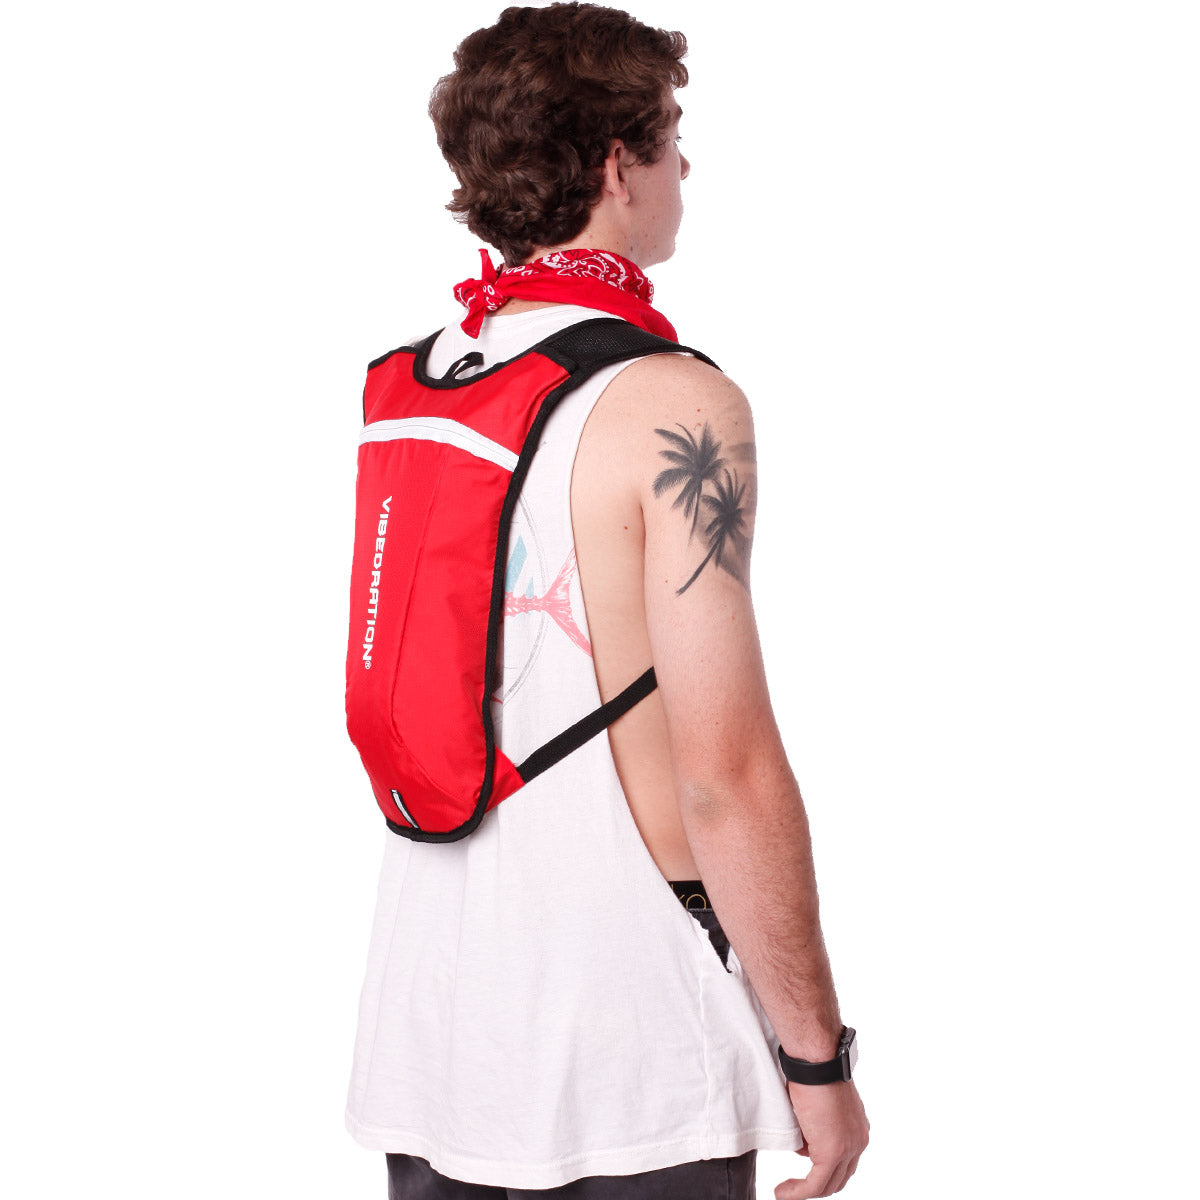 Side view of male wearing red and white hydration pack.